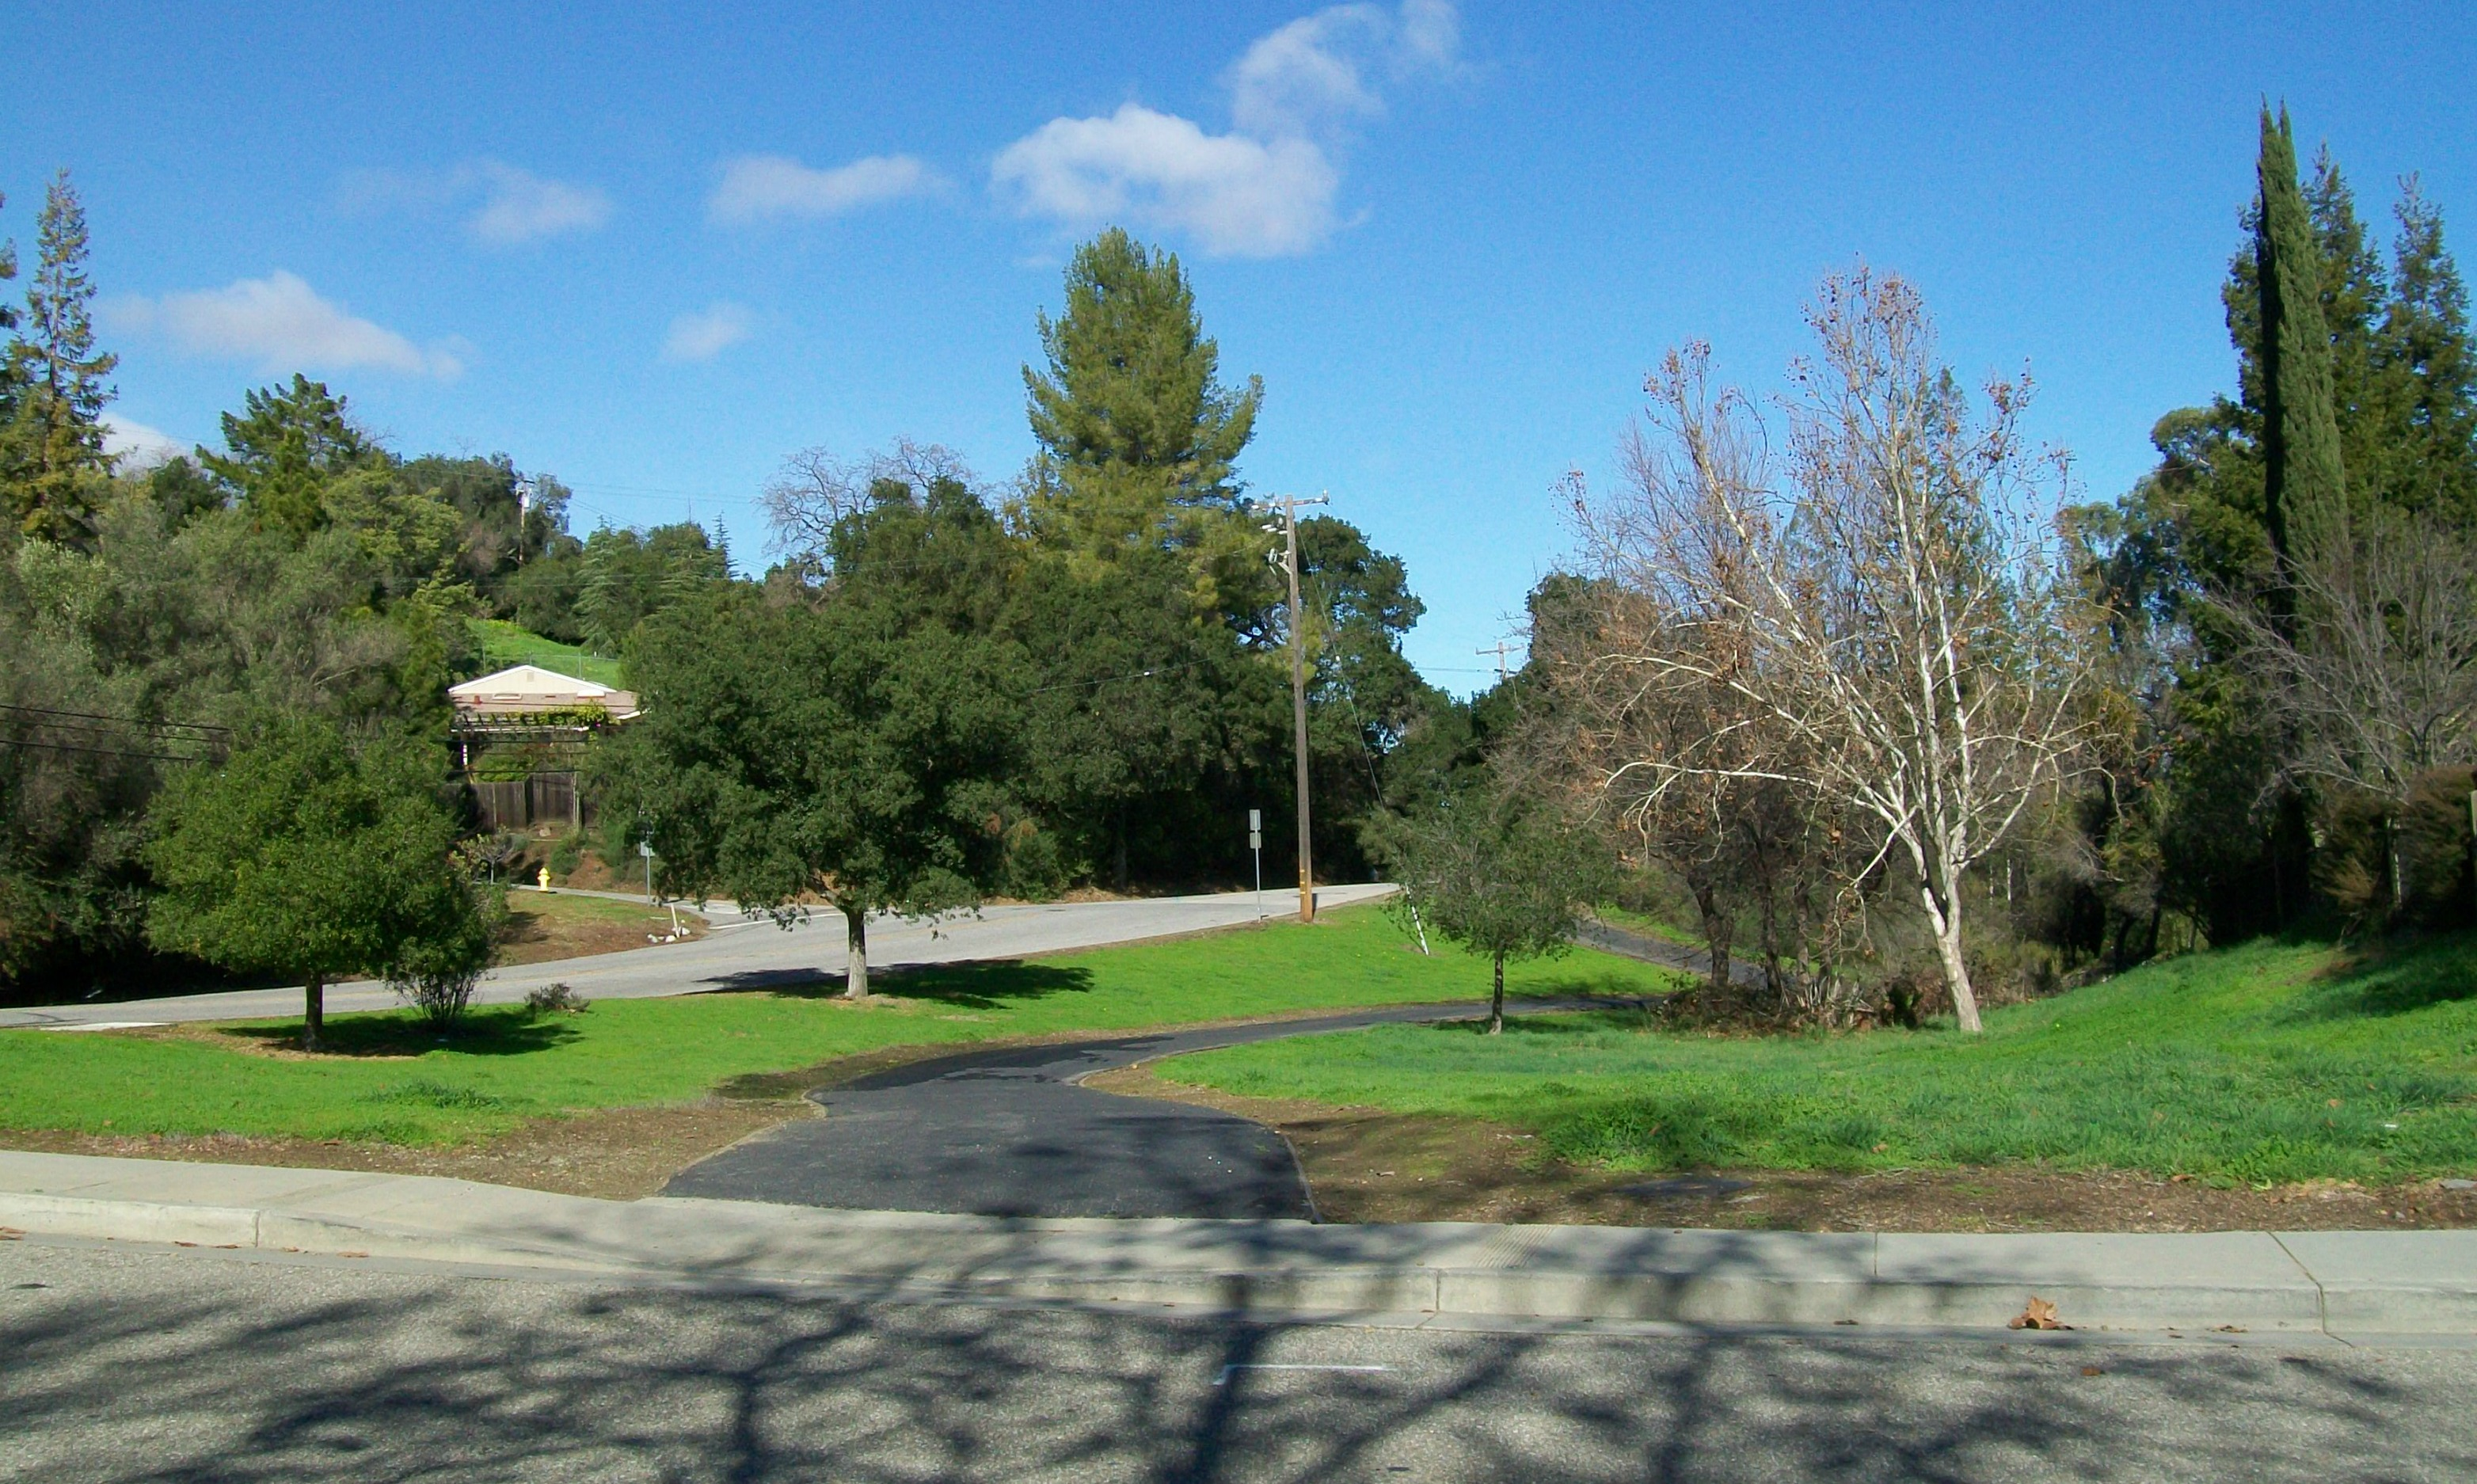 Open Space at Kennedy Meadows - Kennedy Meadows and Kennedy Estates